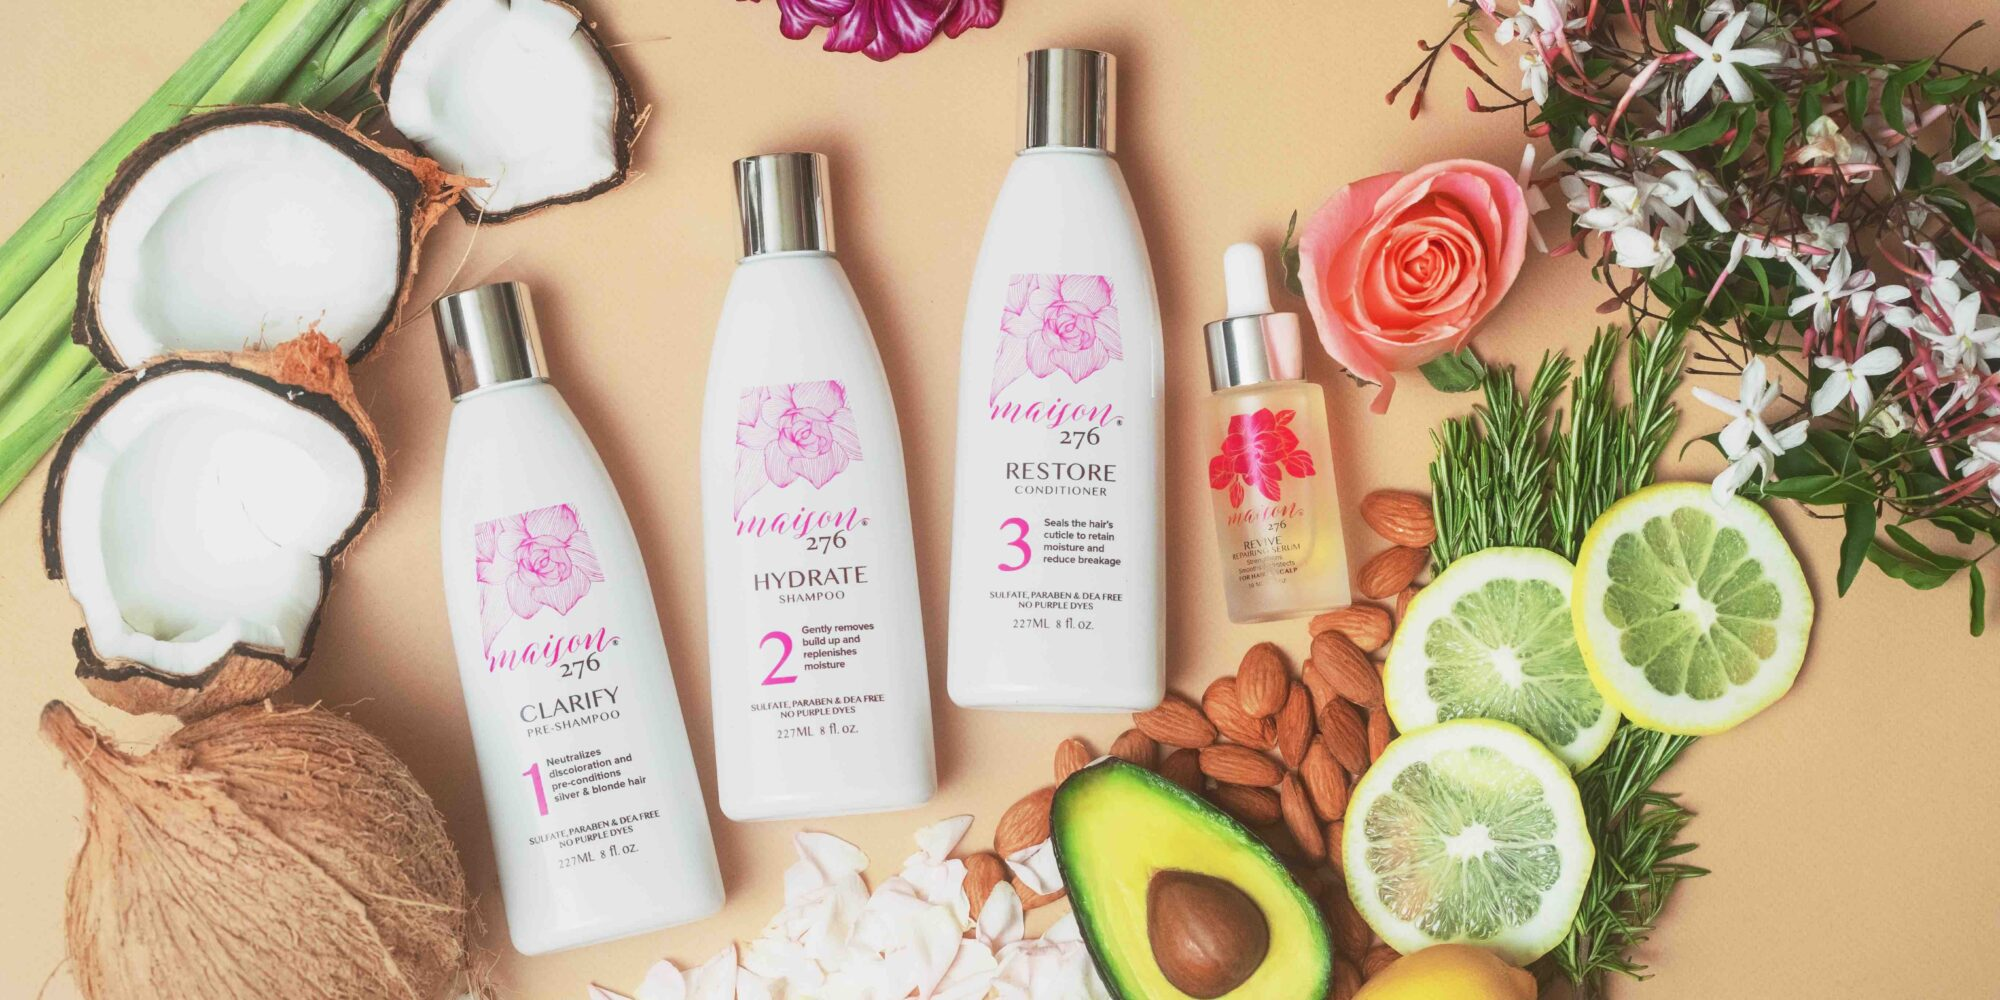 From Etsy To QVC: Gen X And Baby Boomer Haircare Brand Maison 276 Is Accelerating As More Women Embrace Their Grays